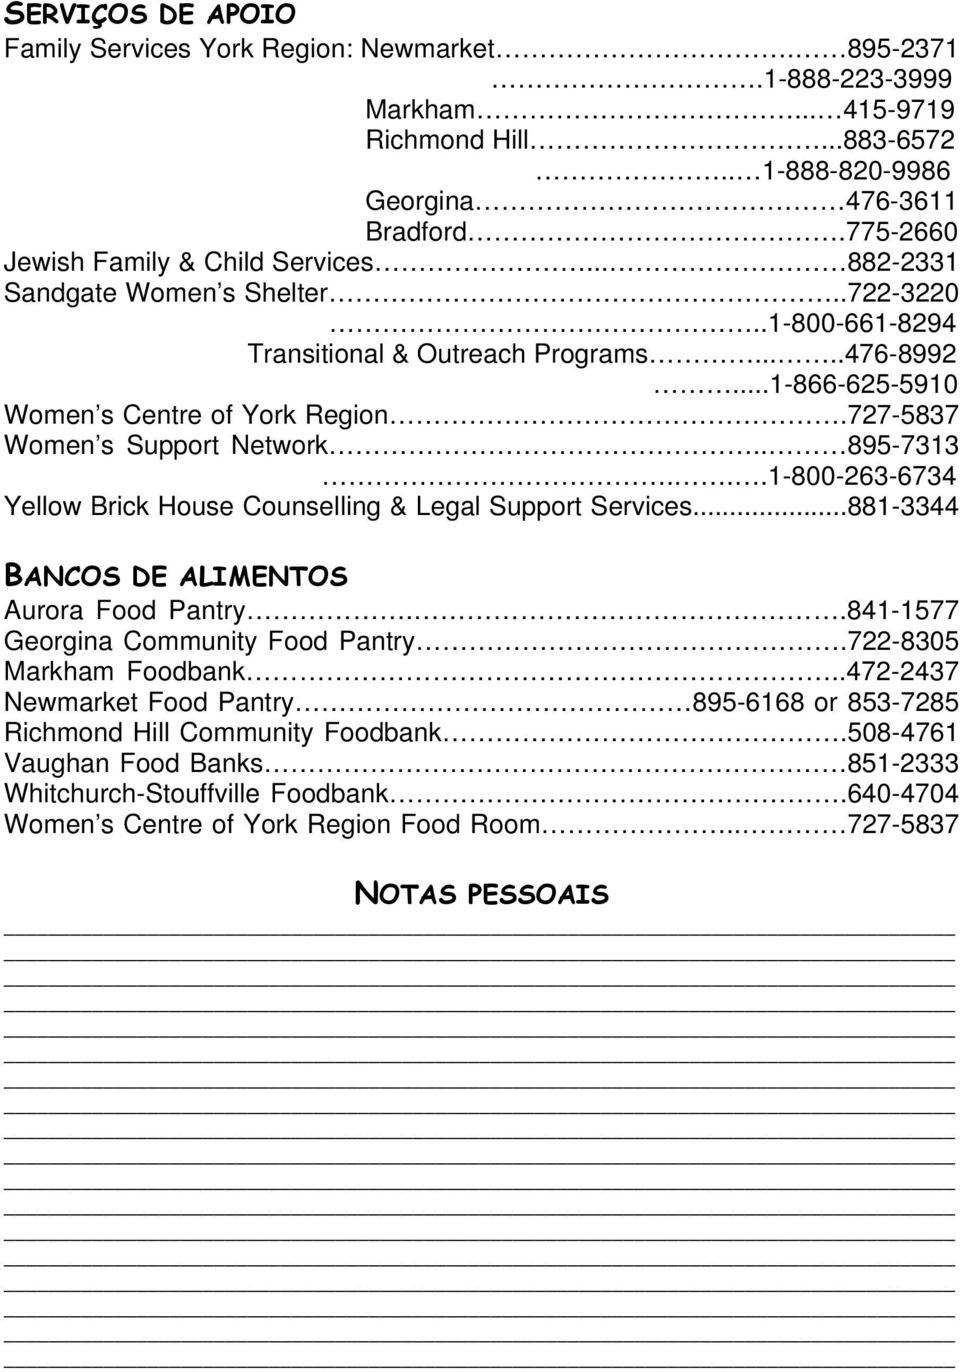 727-5837 Women s Support Network.. 895-7313...1-800-263-6734 Yellow Brick House Counselling & Legal Support Services...881-3344 BANCOS DE ALIMENTOS Aurora Food Pantry.